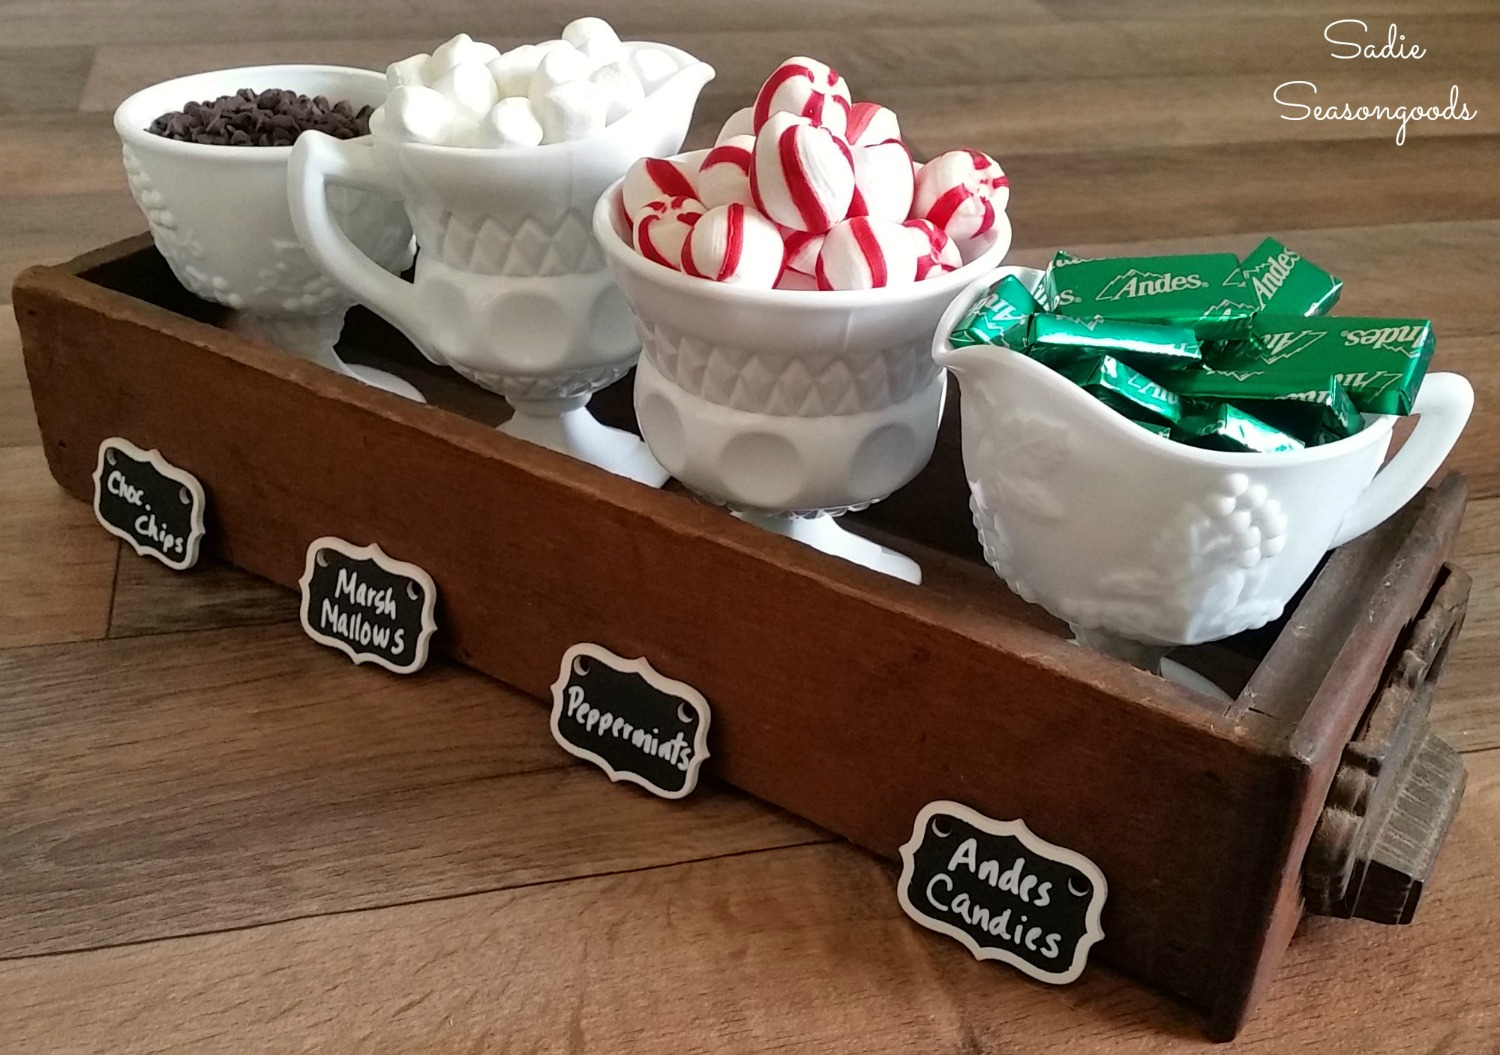 Library Card Catalog Drawer Condiment Set for a Hot Chocolate Bar